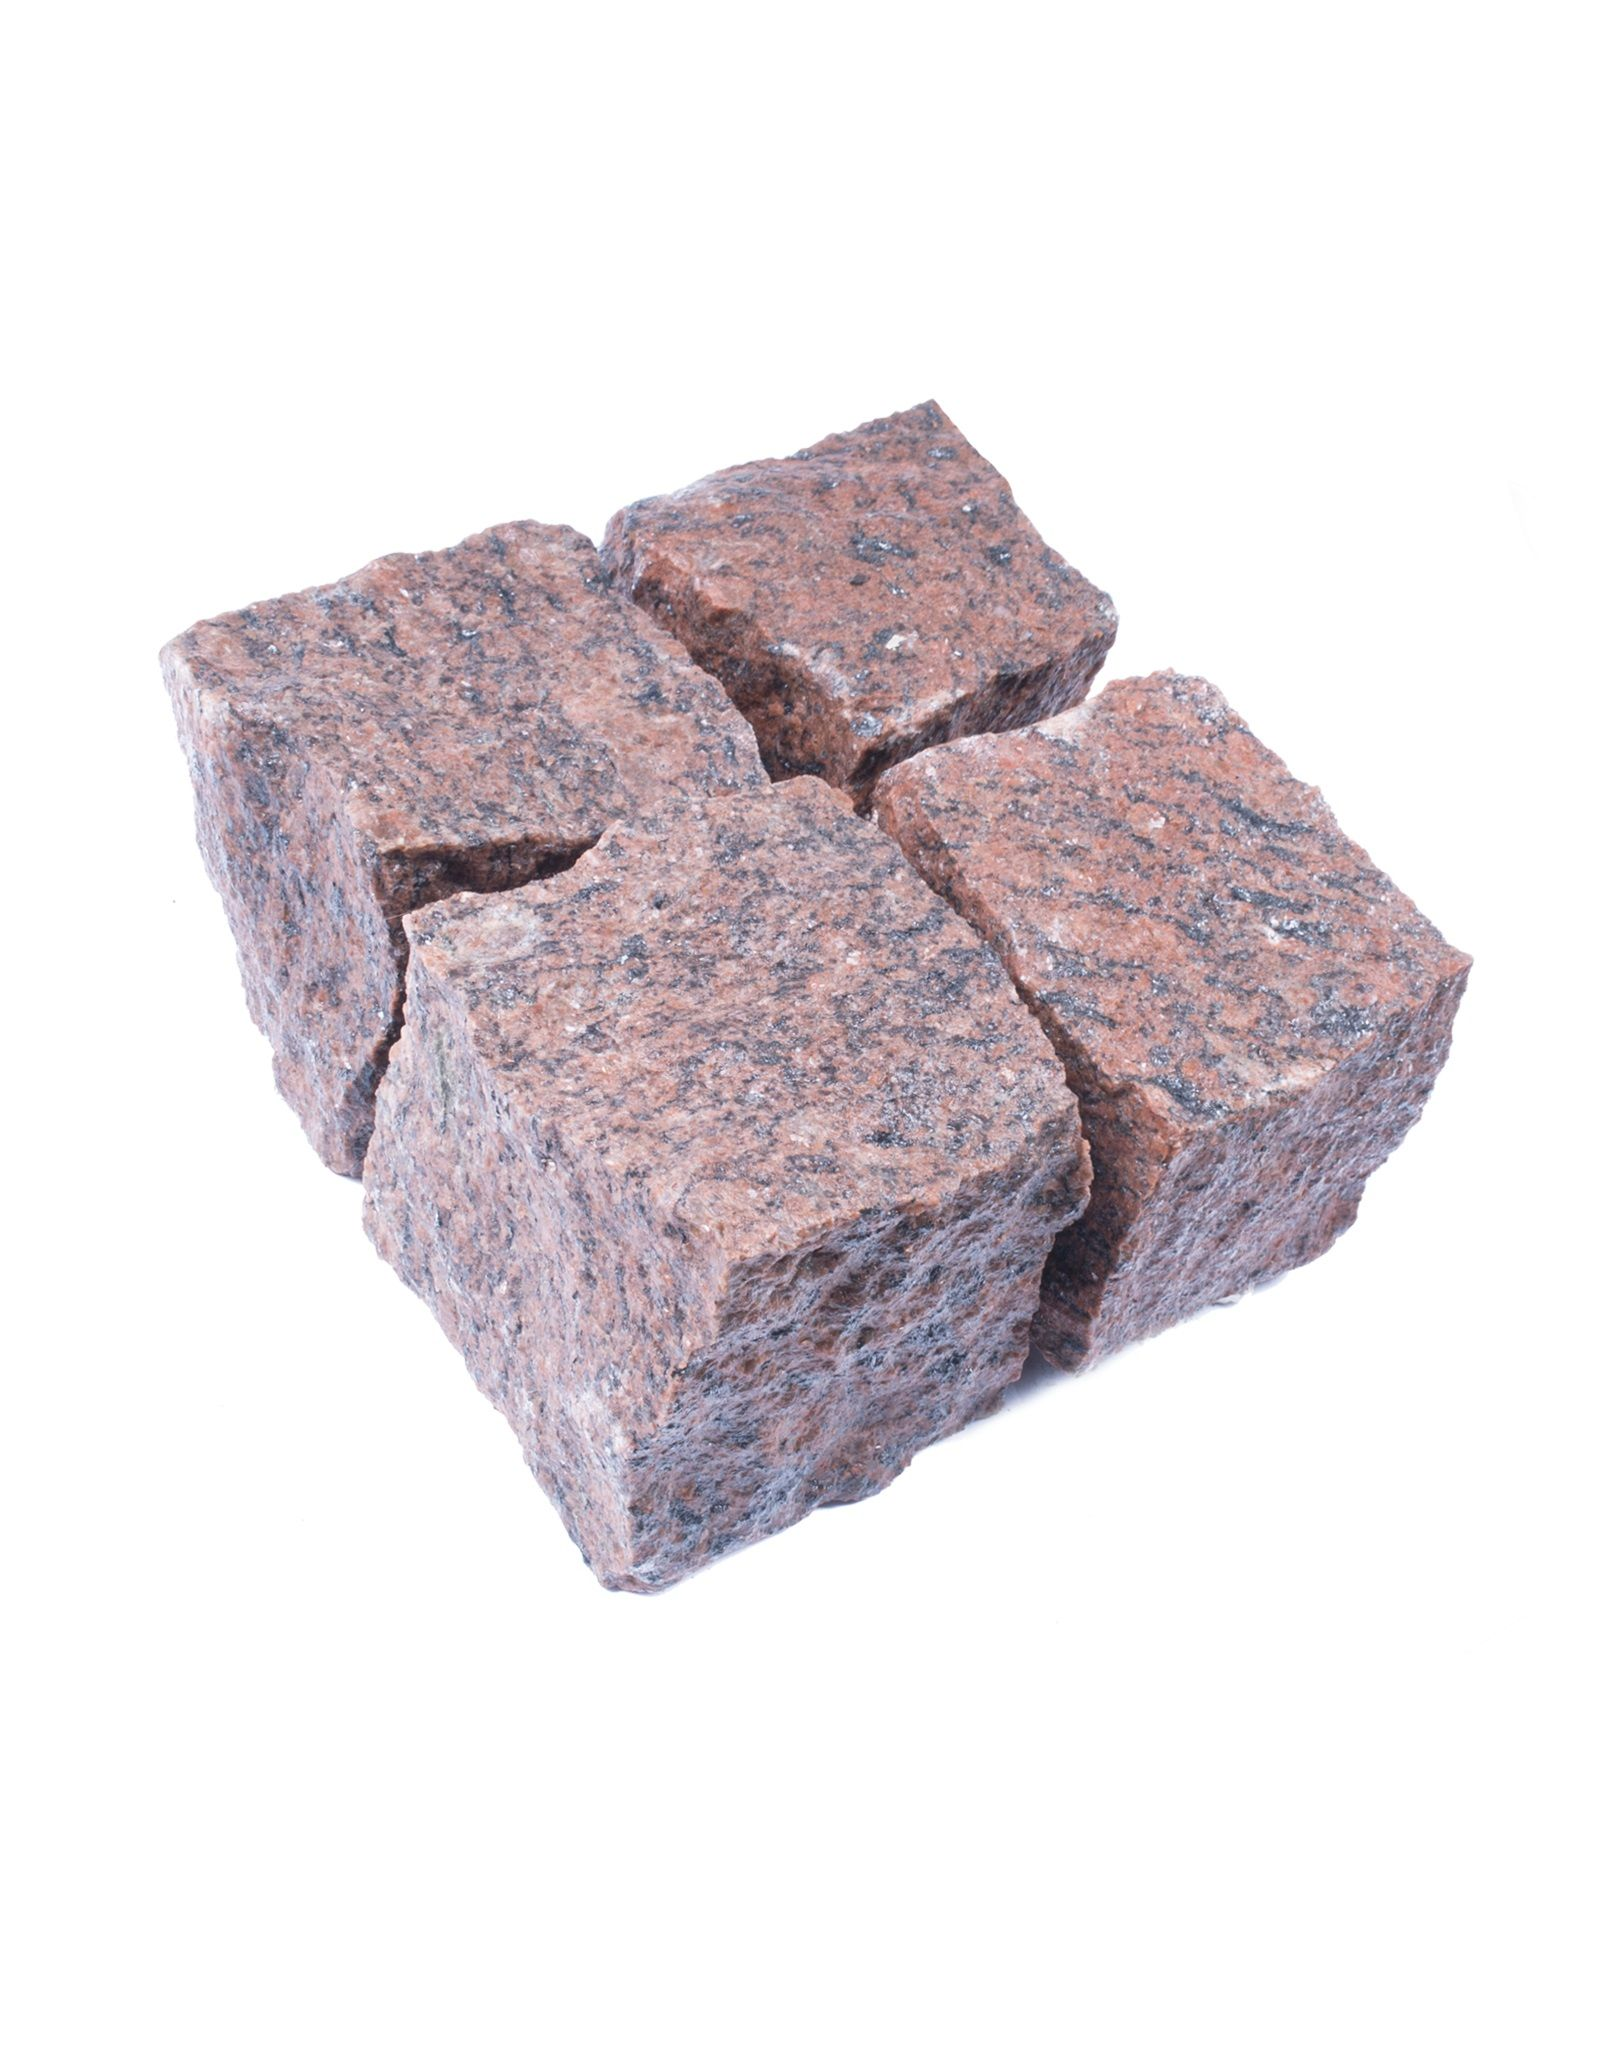 Red Granite Setts Are Imported From Sweden They Stand Out From Similar Products Thanks To Their Vivid Shade Of Garden Slabs Adventurous Design Paving Stones